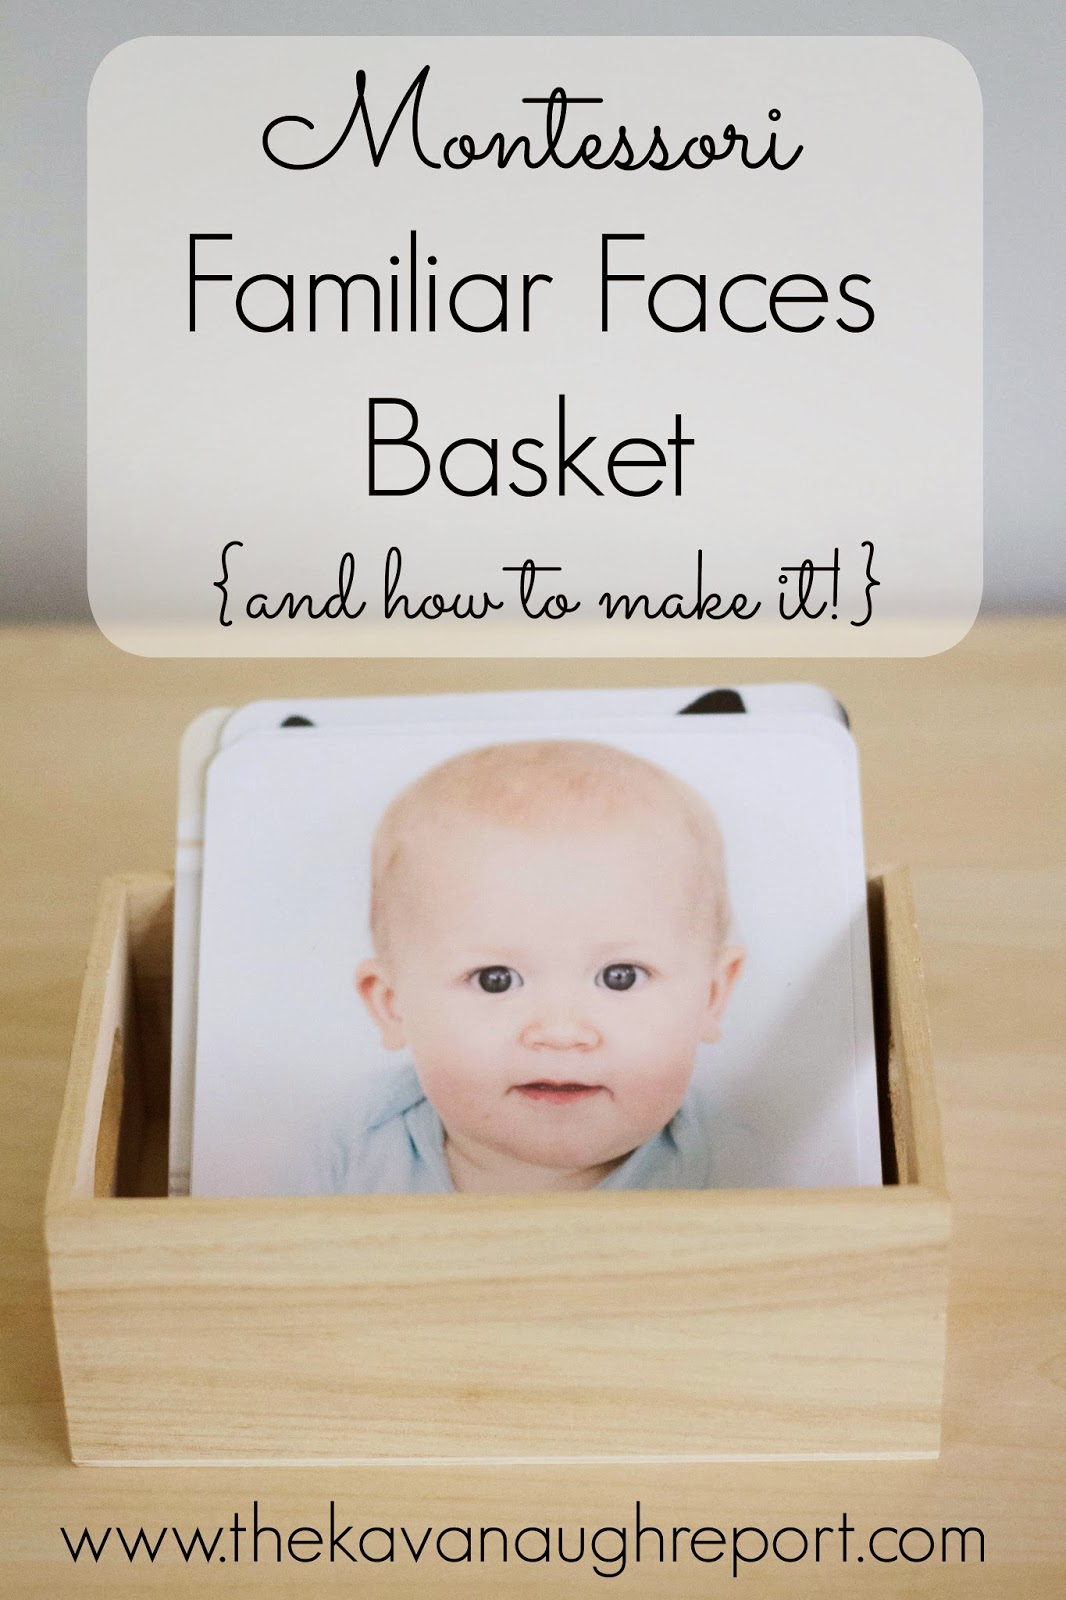 Montessori friendly familiar faces basket - an easy DIY for babies and toddlers to recognize family members